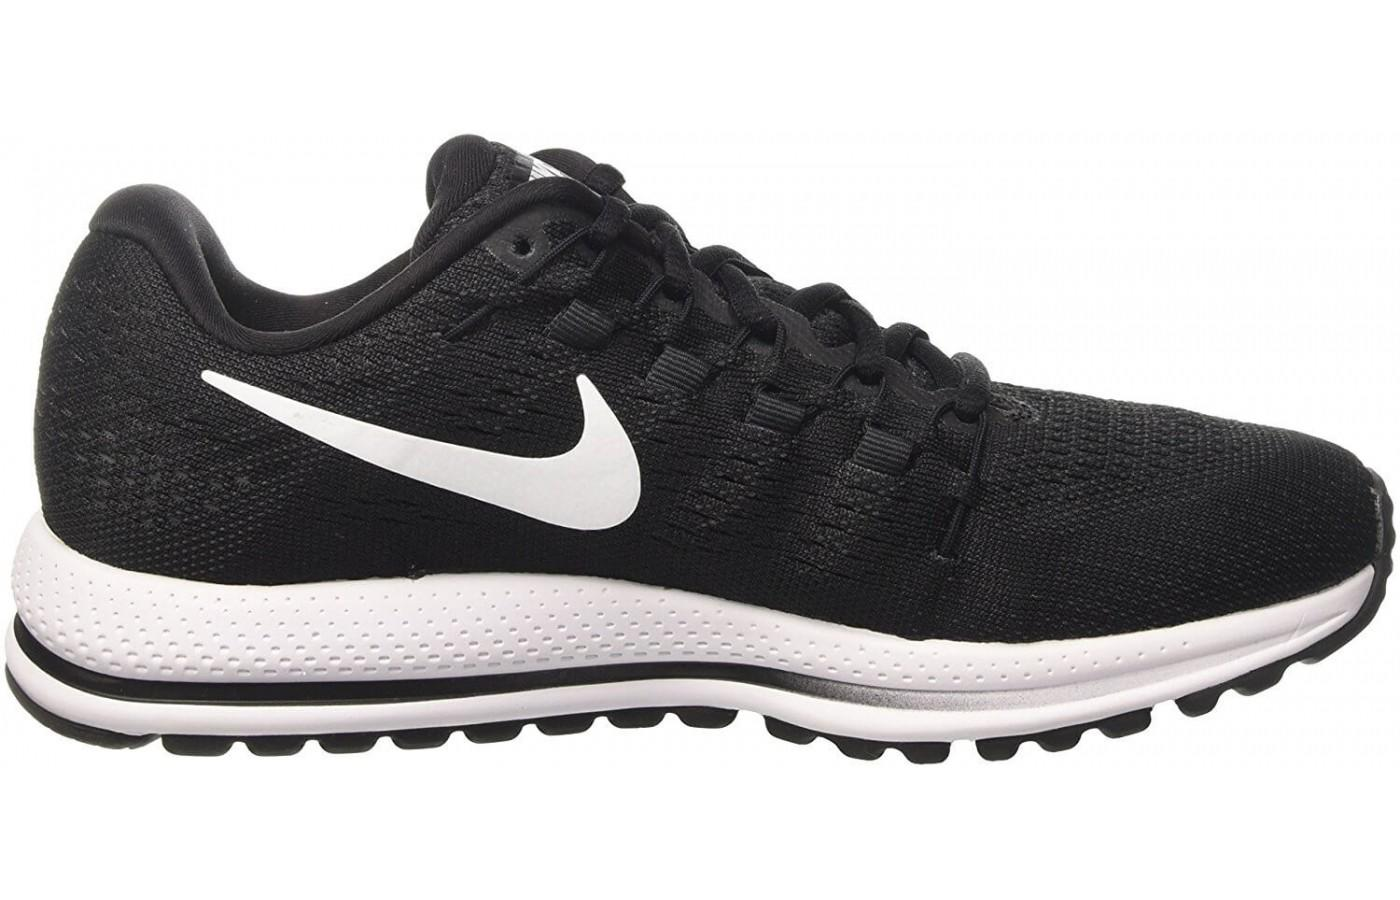 buy Nike Air Zoom Vomero 12 Neutral Running Shoe Women